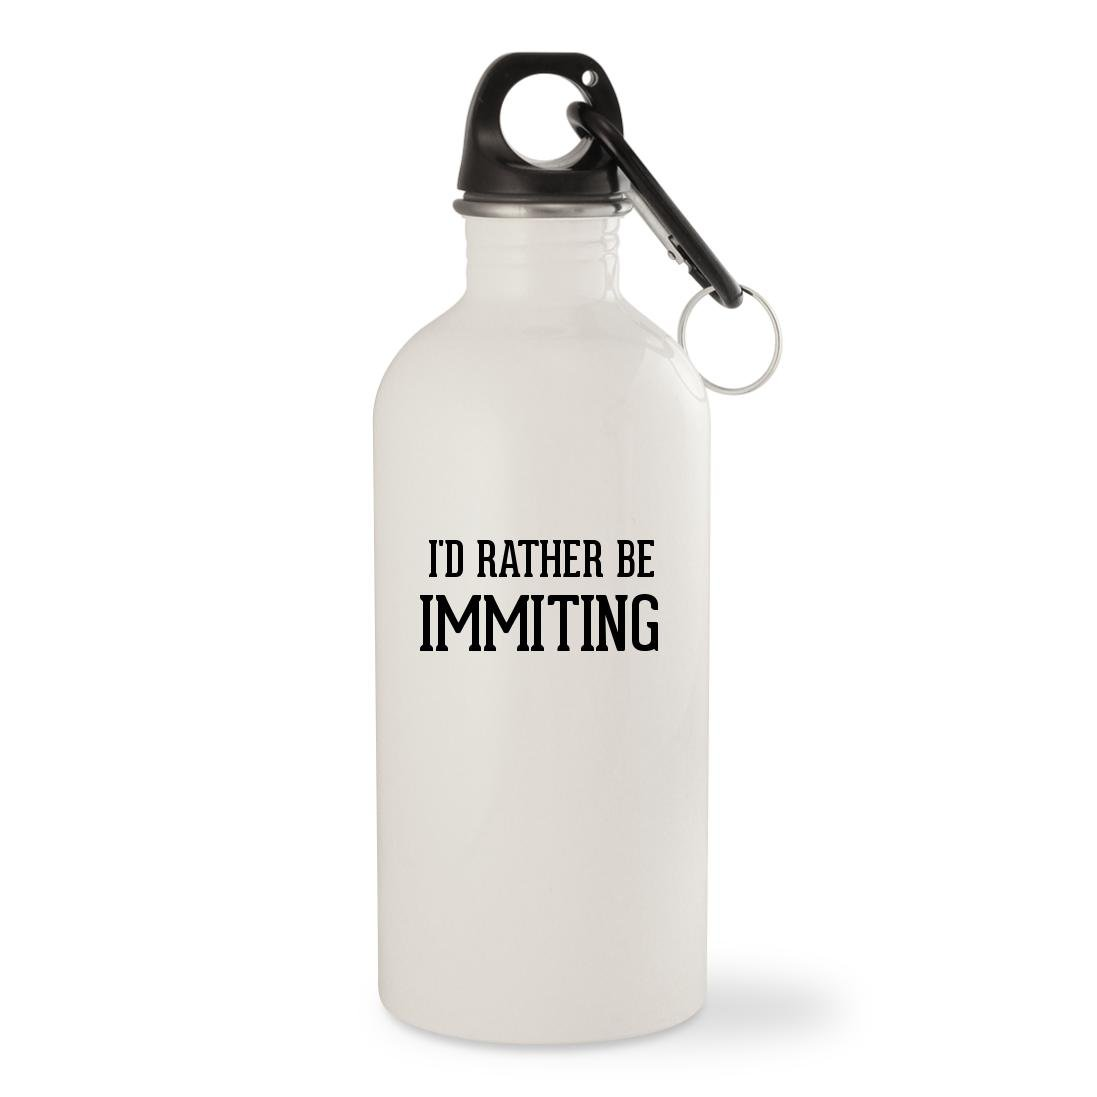 I'd Rather Be IMMITING - White 20oz Stainless Steel Water Bottle with Carabiner